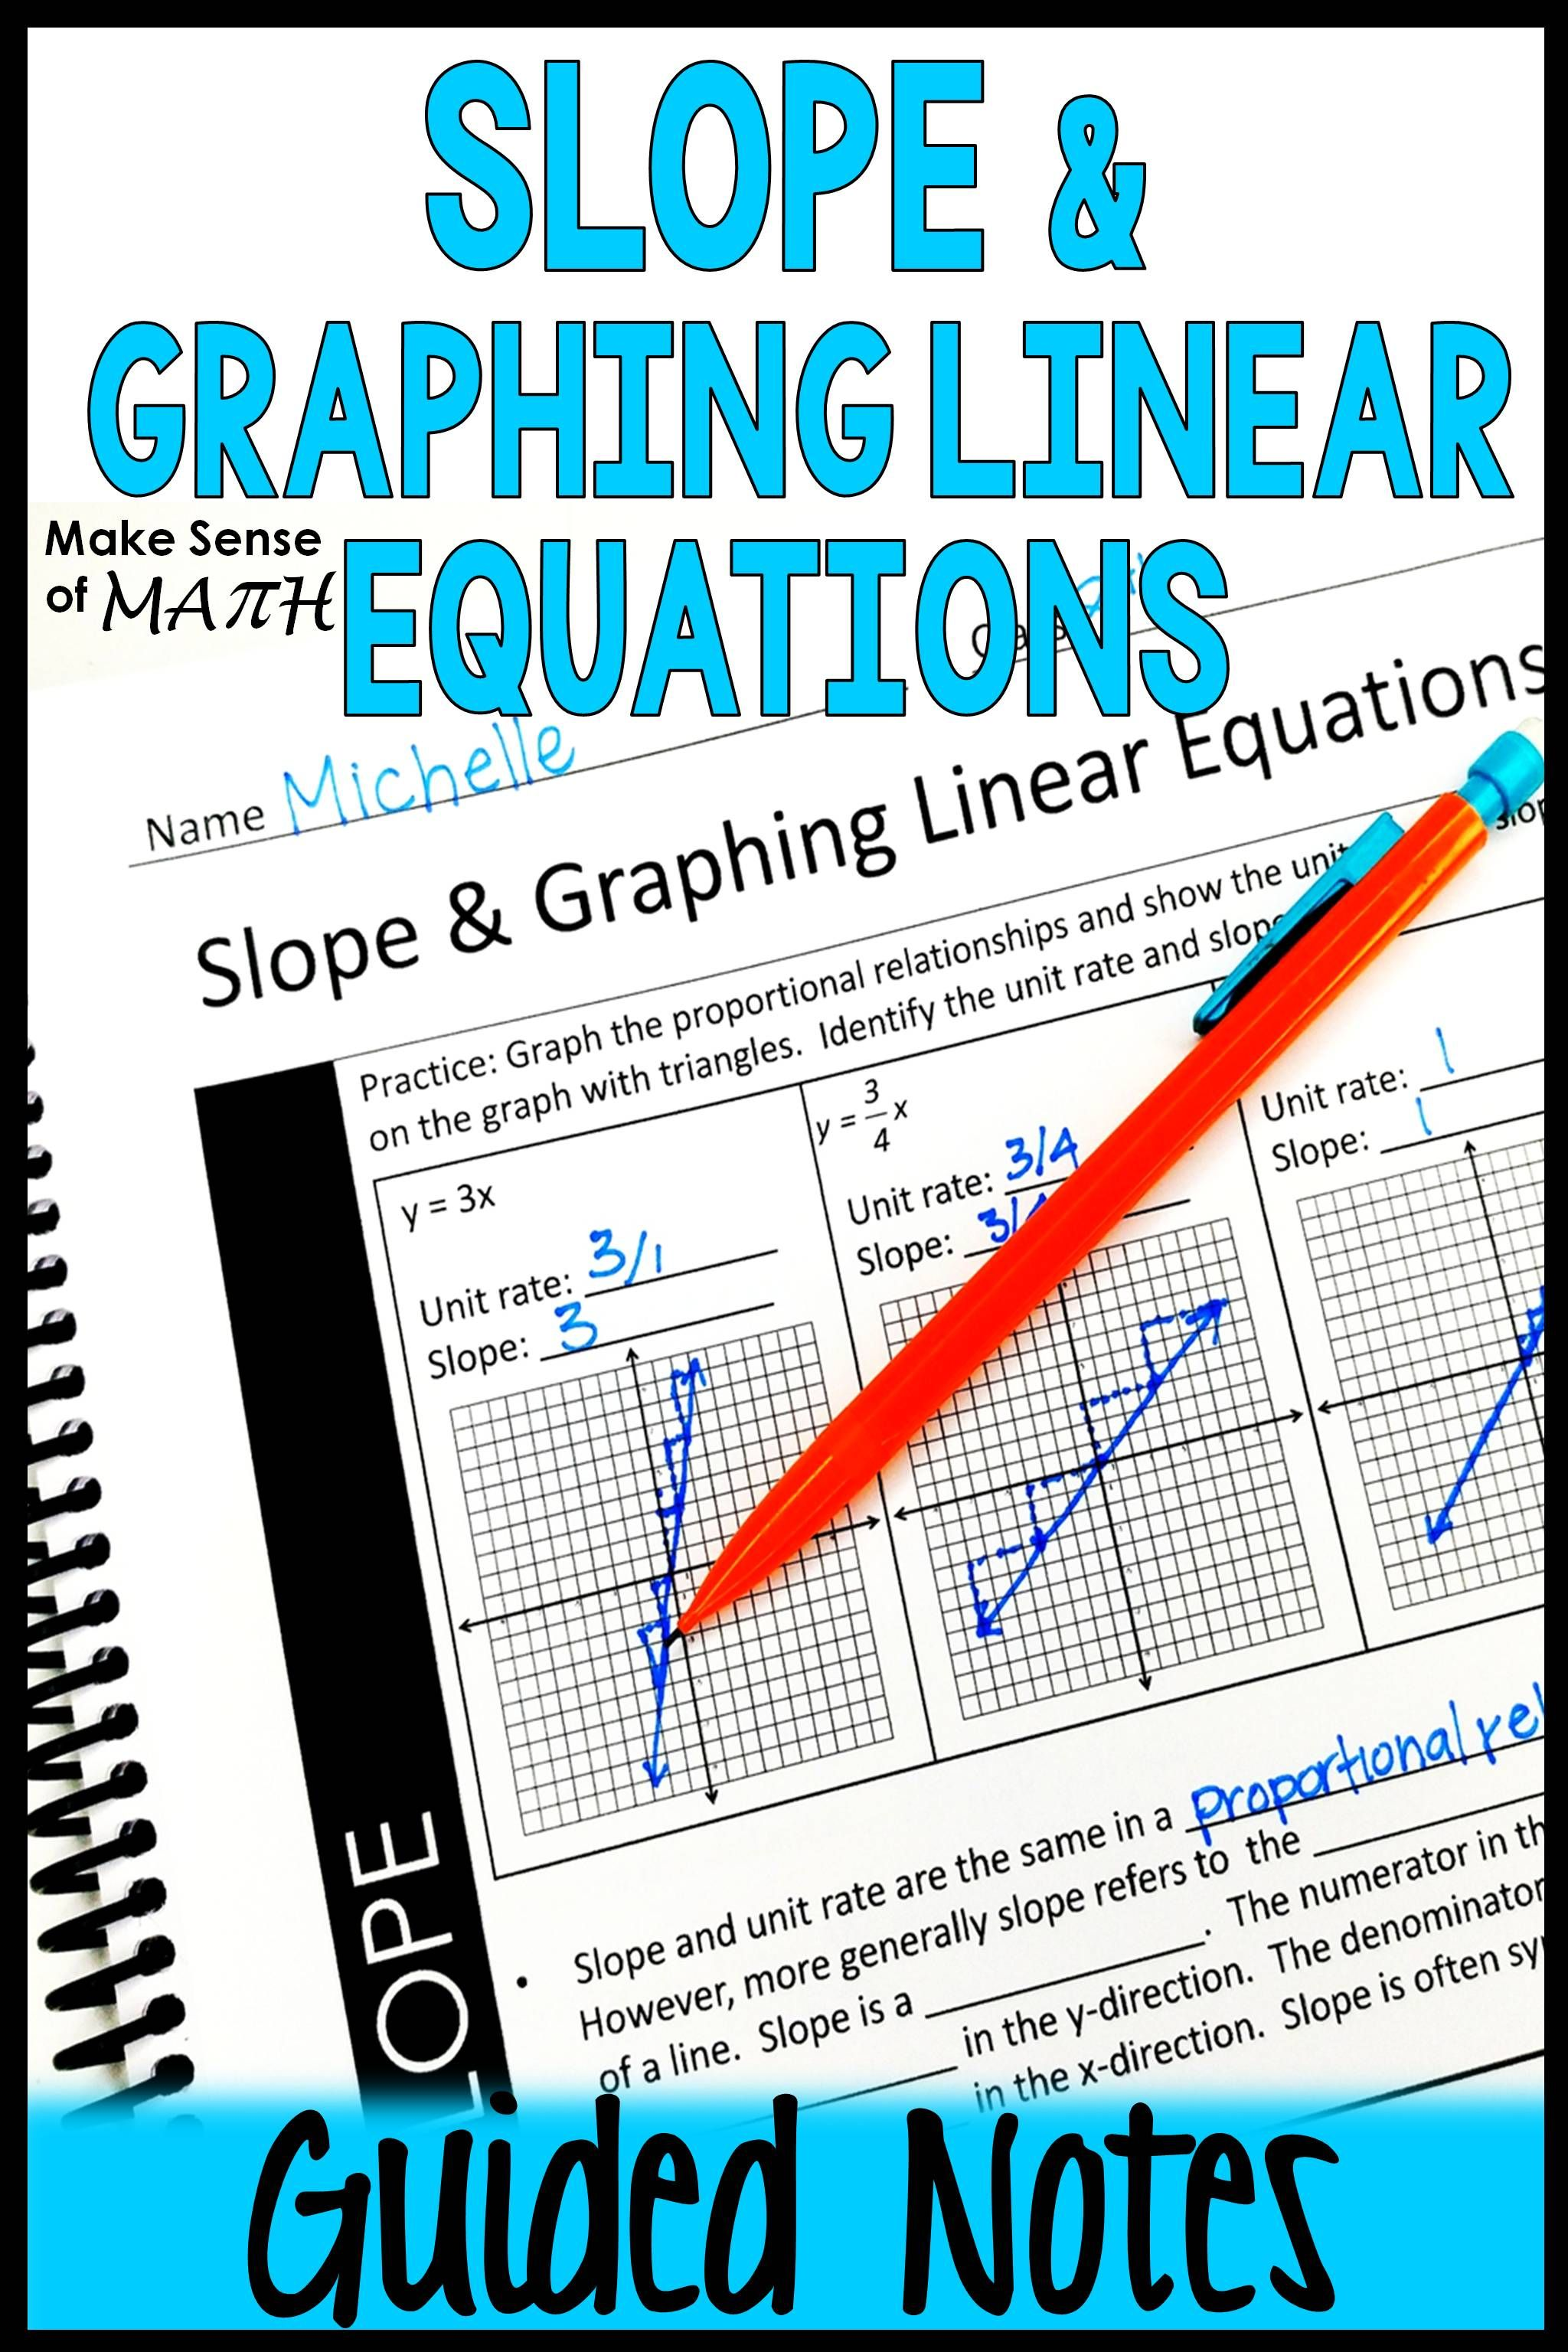 small resolution of Slope and Graphing Linear Equations Notes   Graphing linear equations